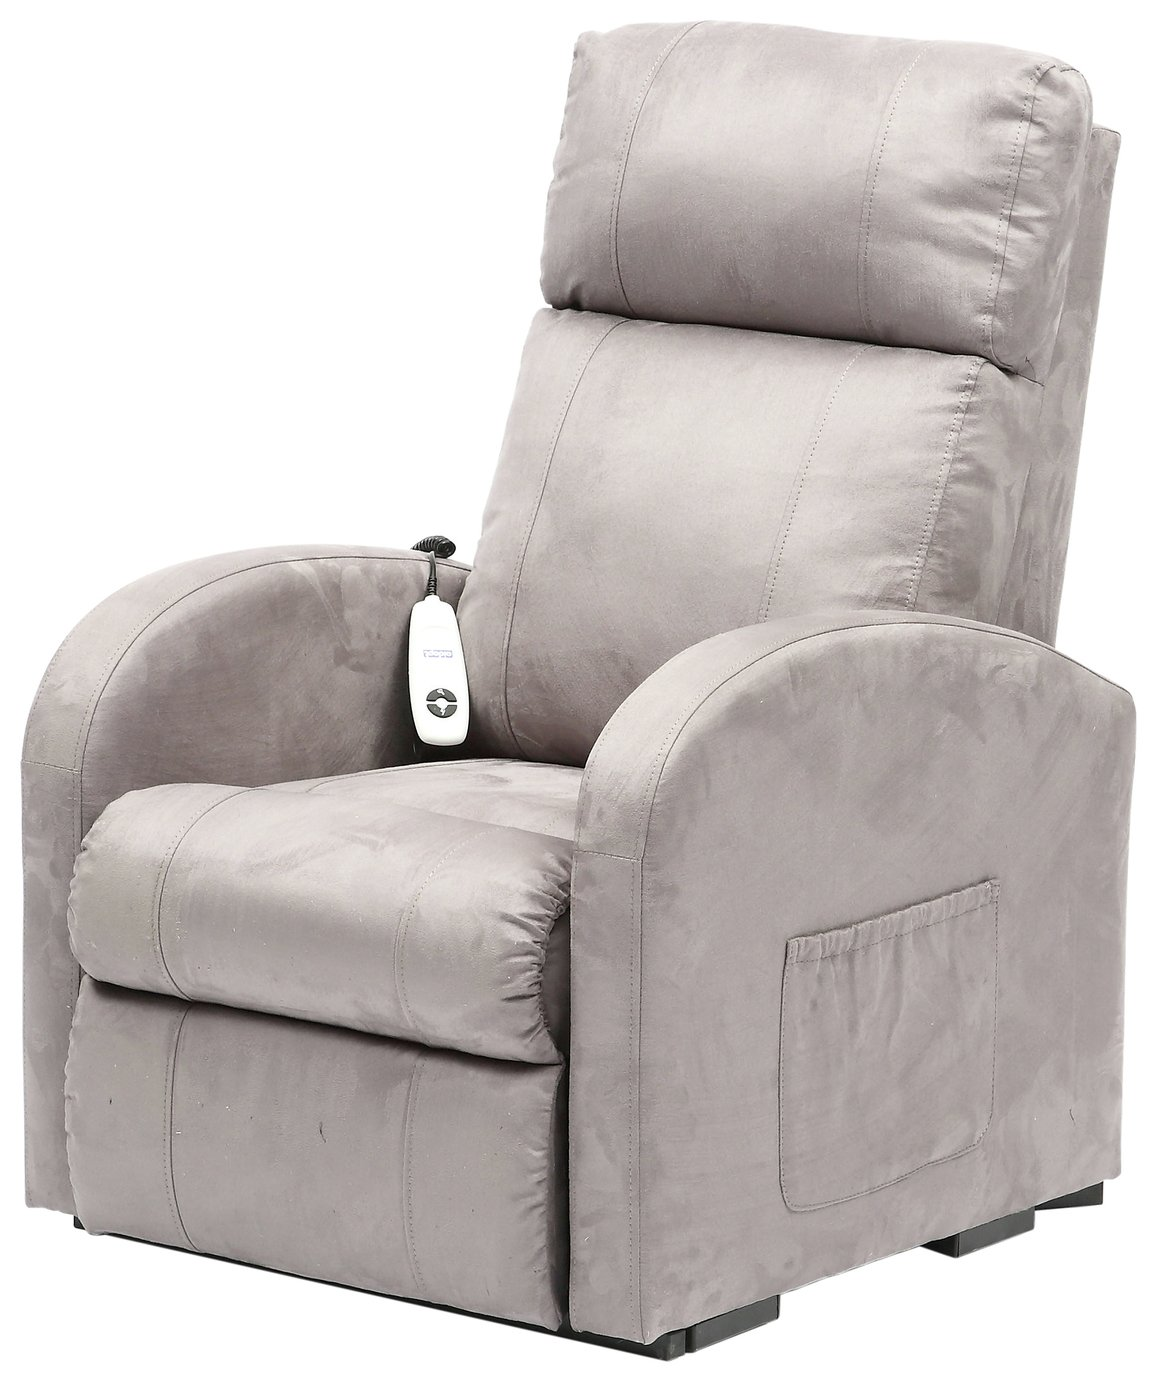 Aidapt Daresbury Rise and Recliner Chair